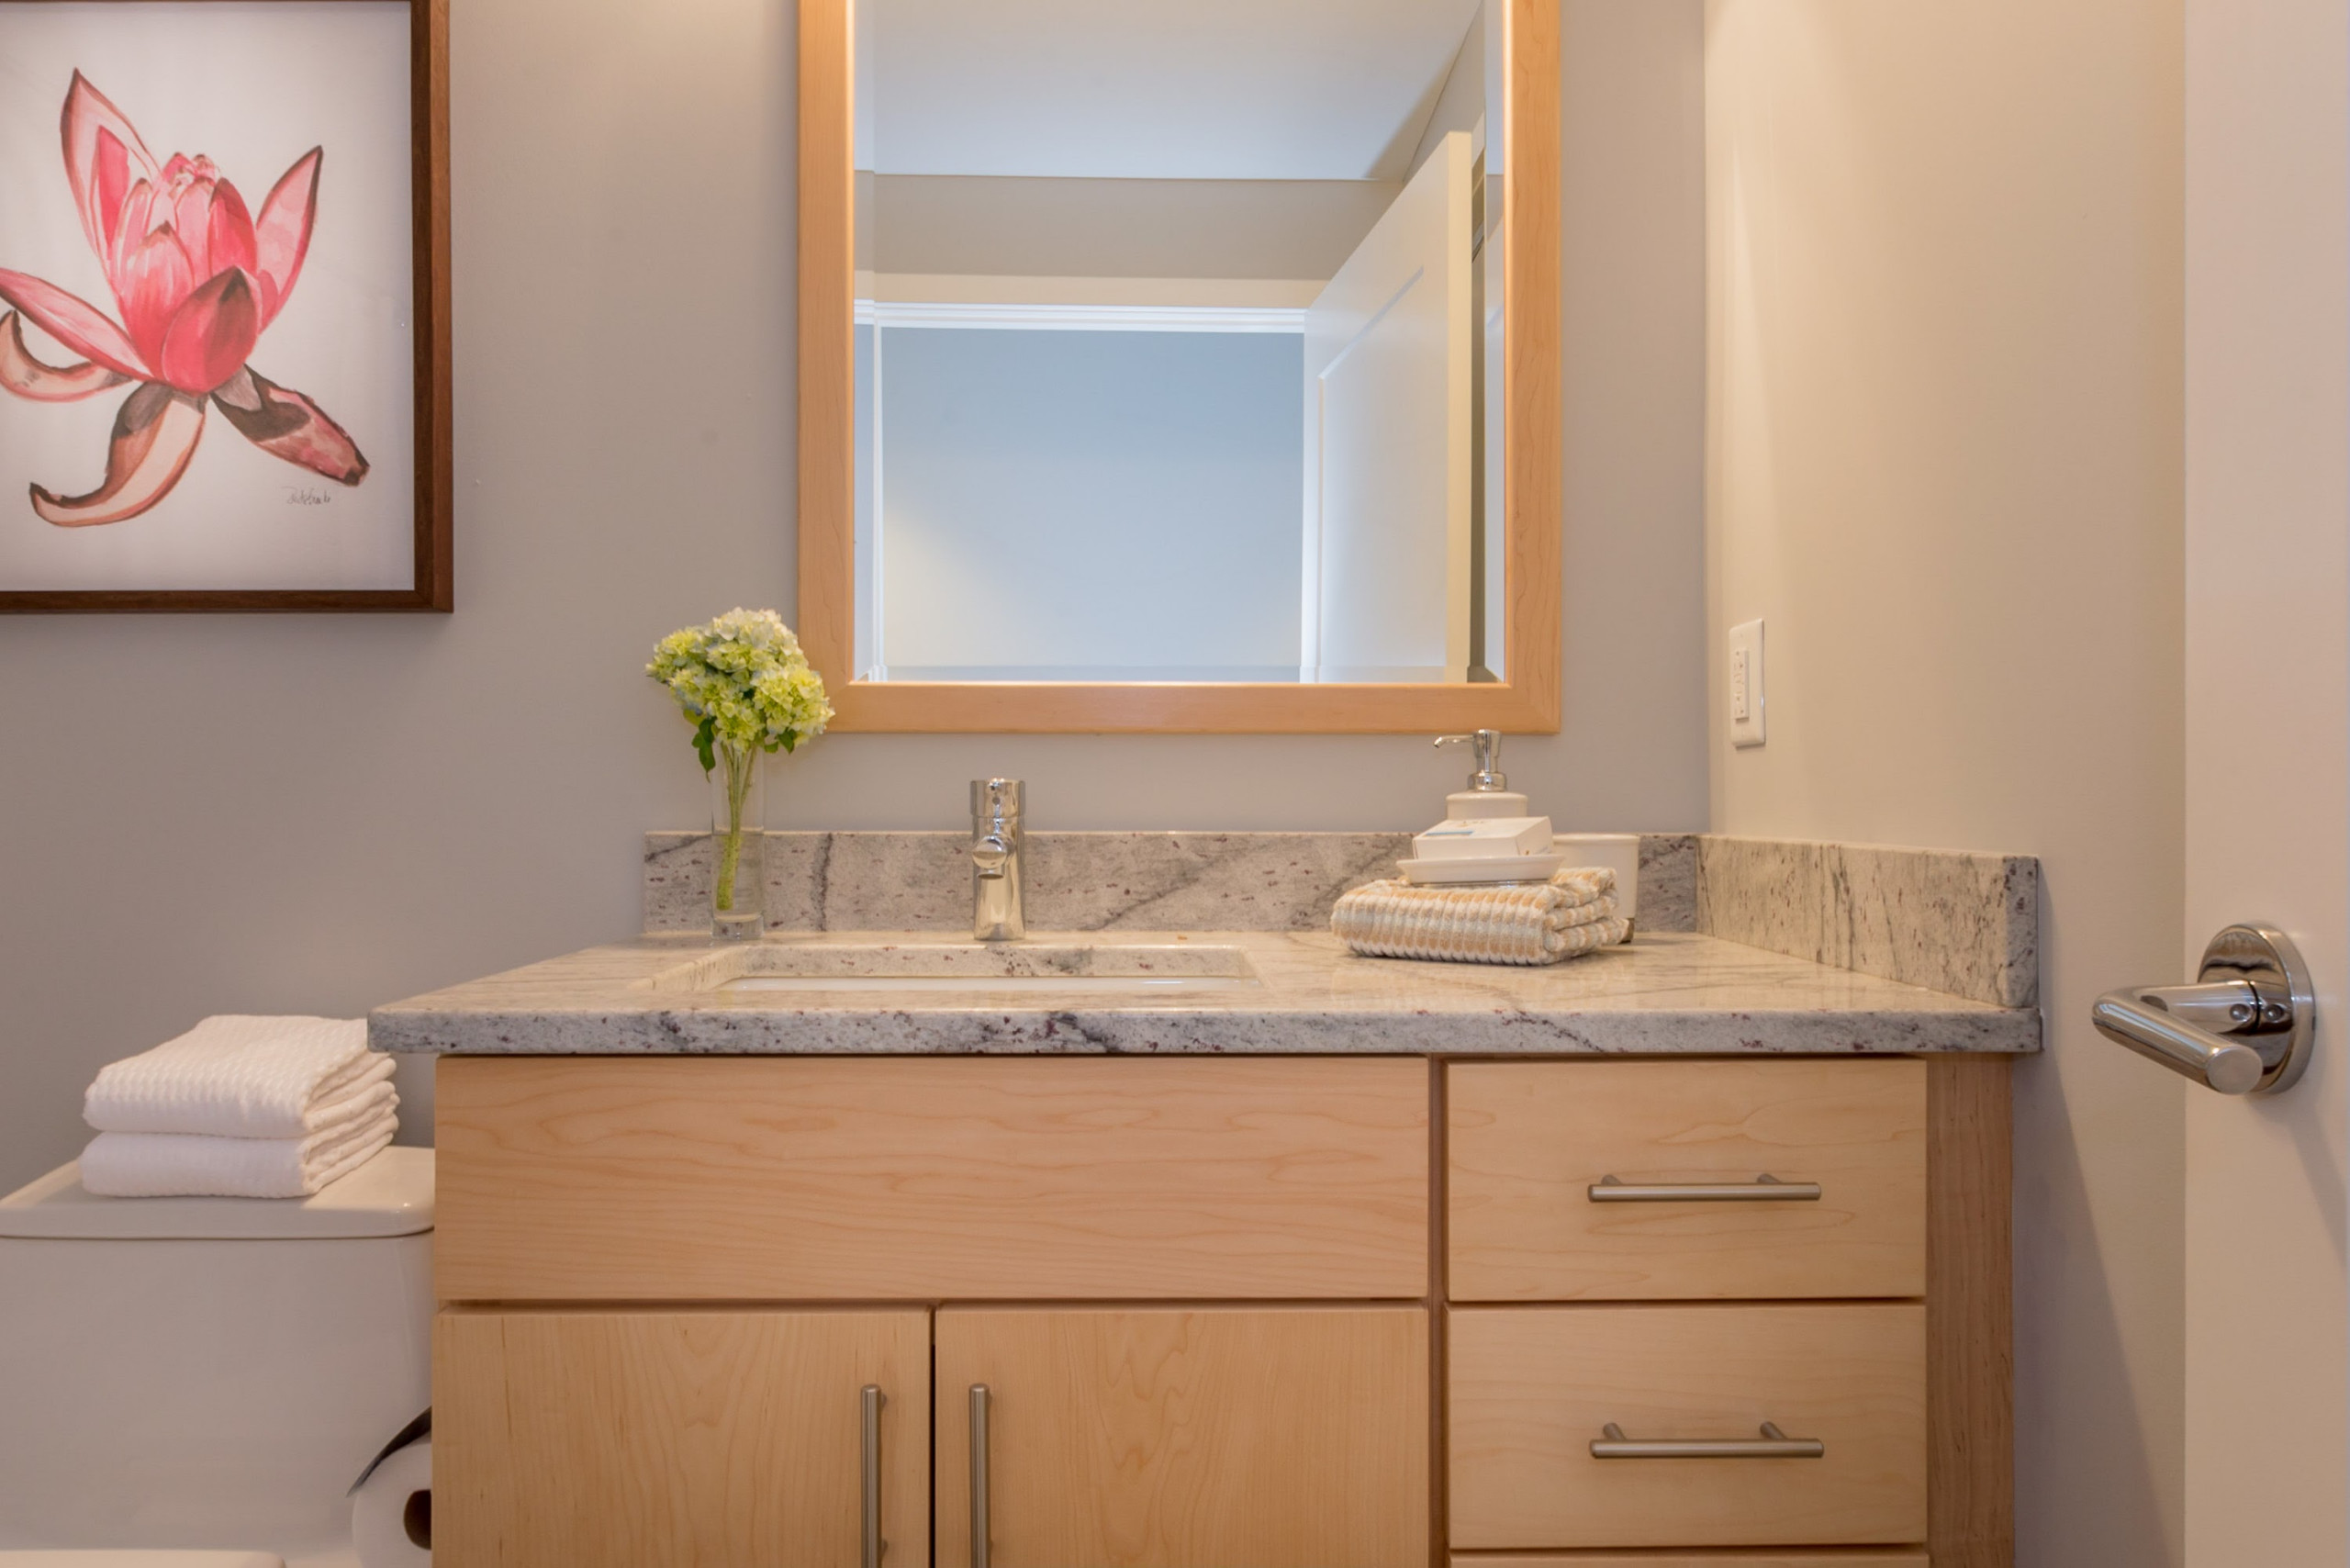 Bachelor Pad Urban Condo Staging in Portland ME